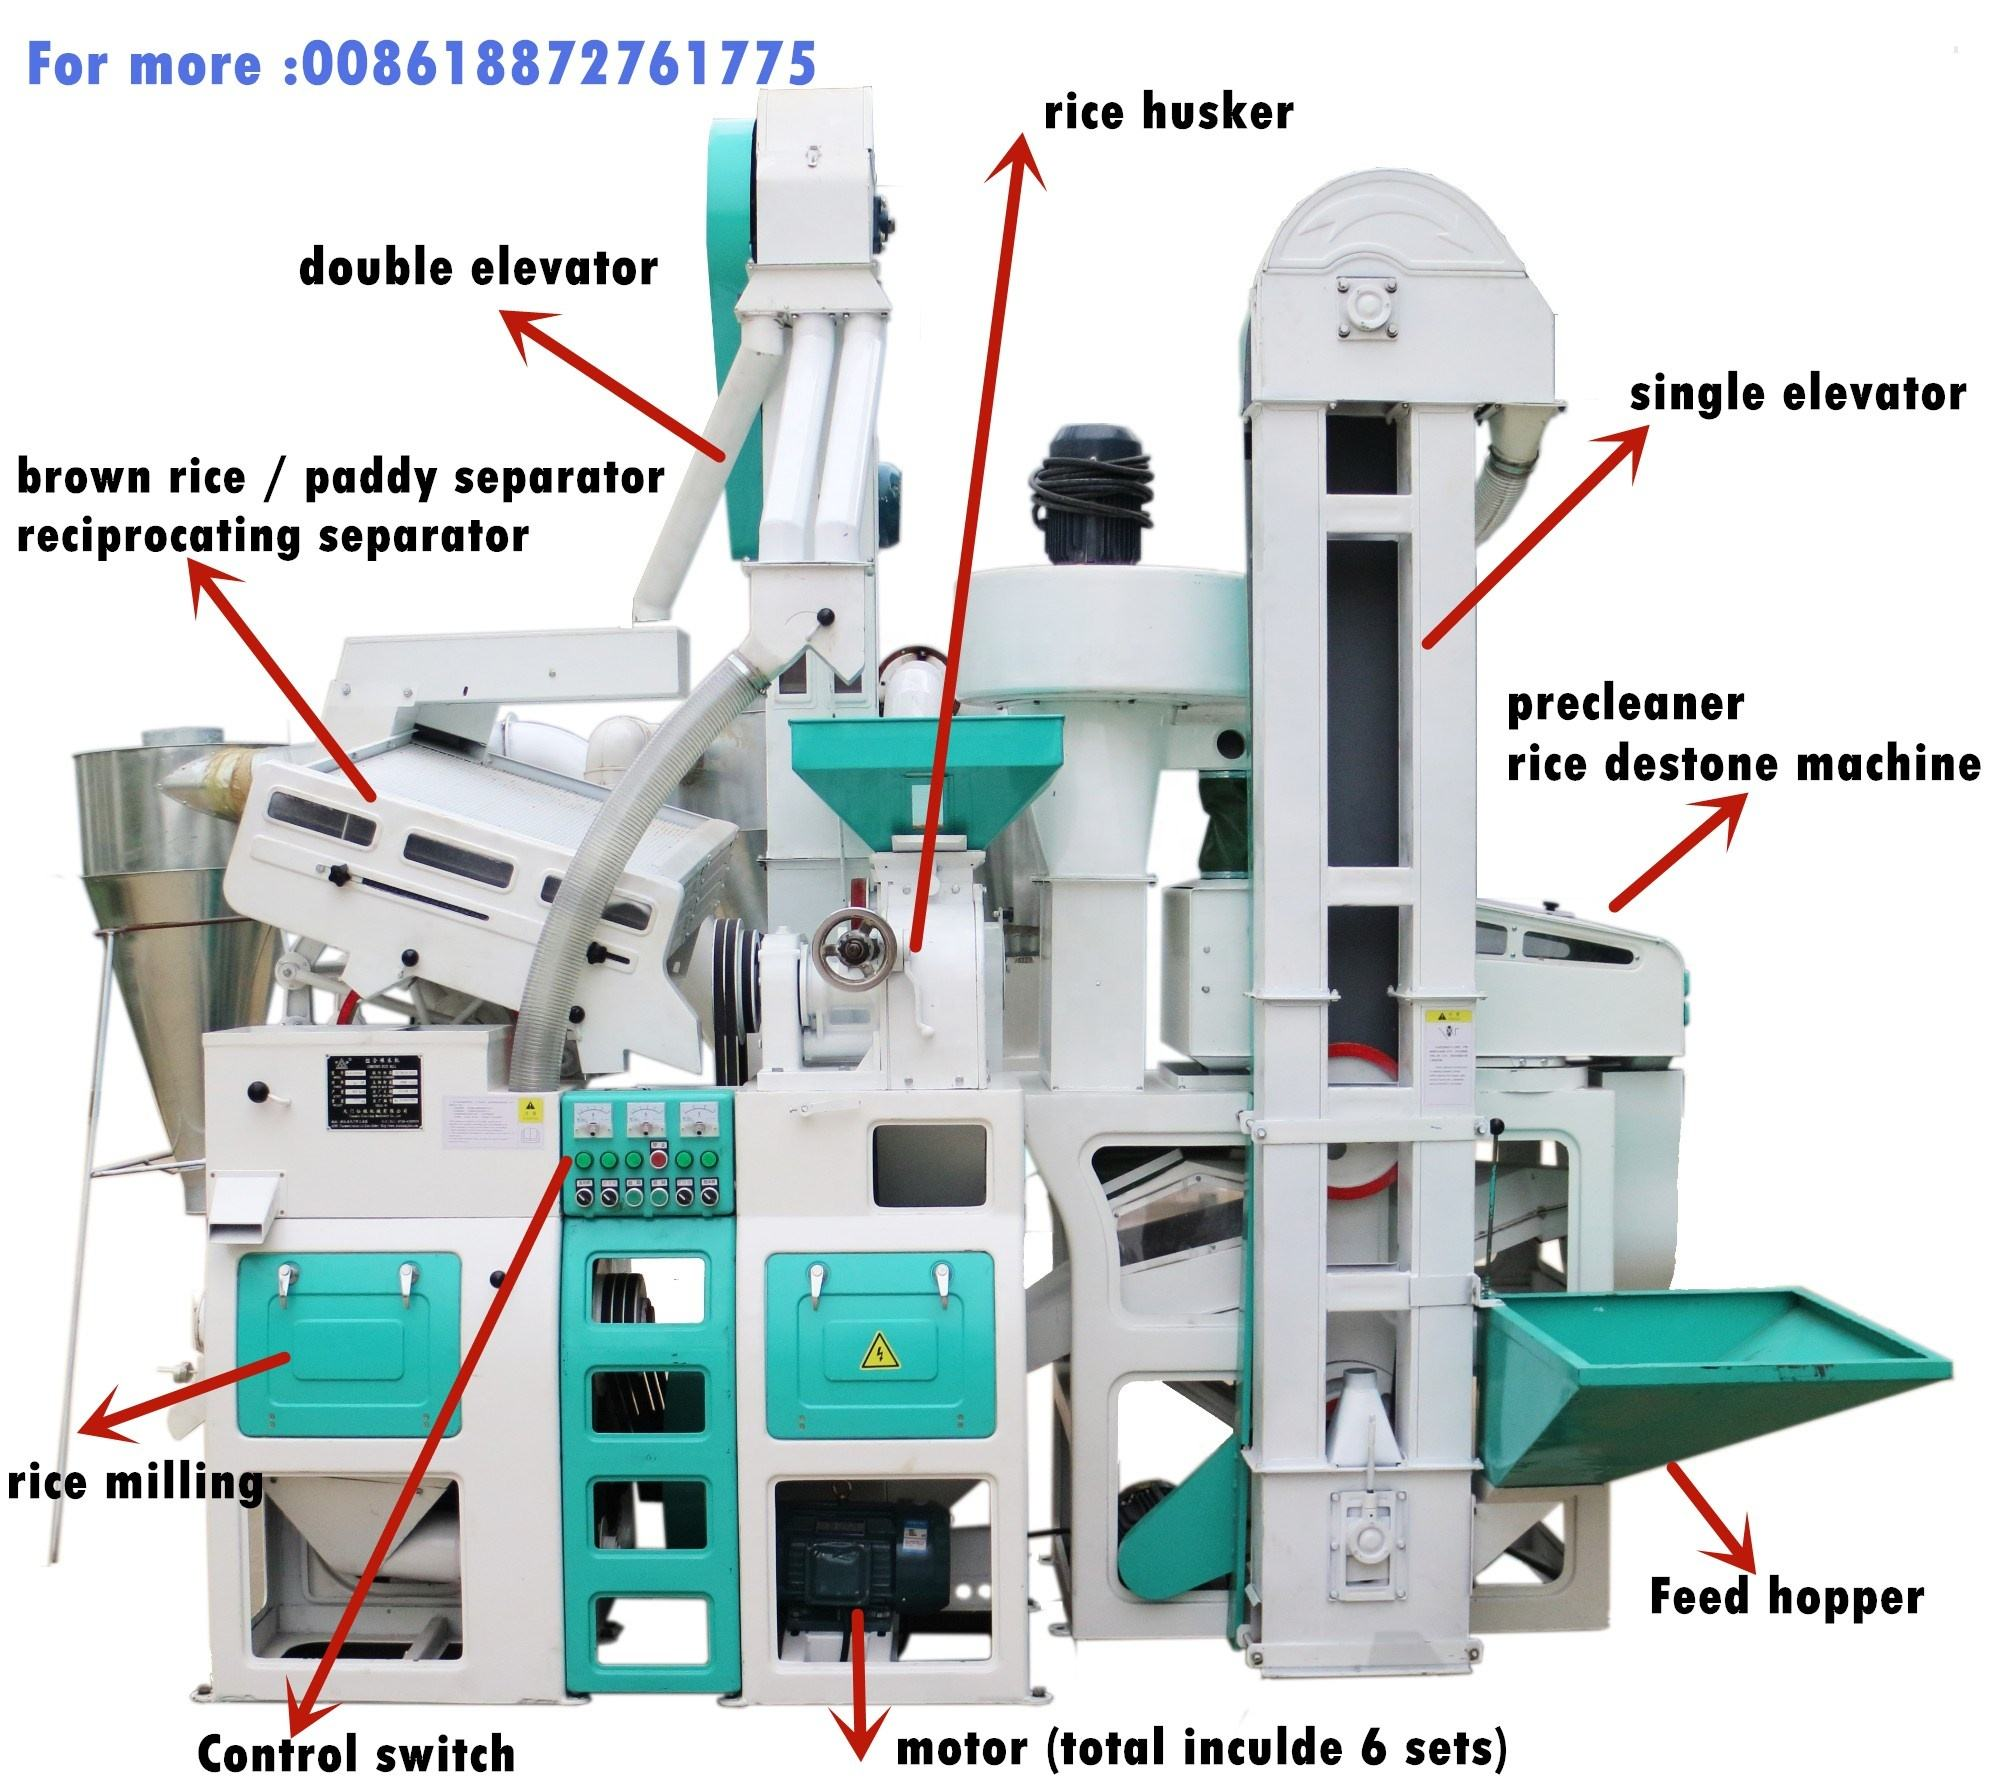 6LN-15/15SF 1T per hour mini rice mill rice mill machine machinery price in nepal india